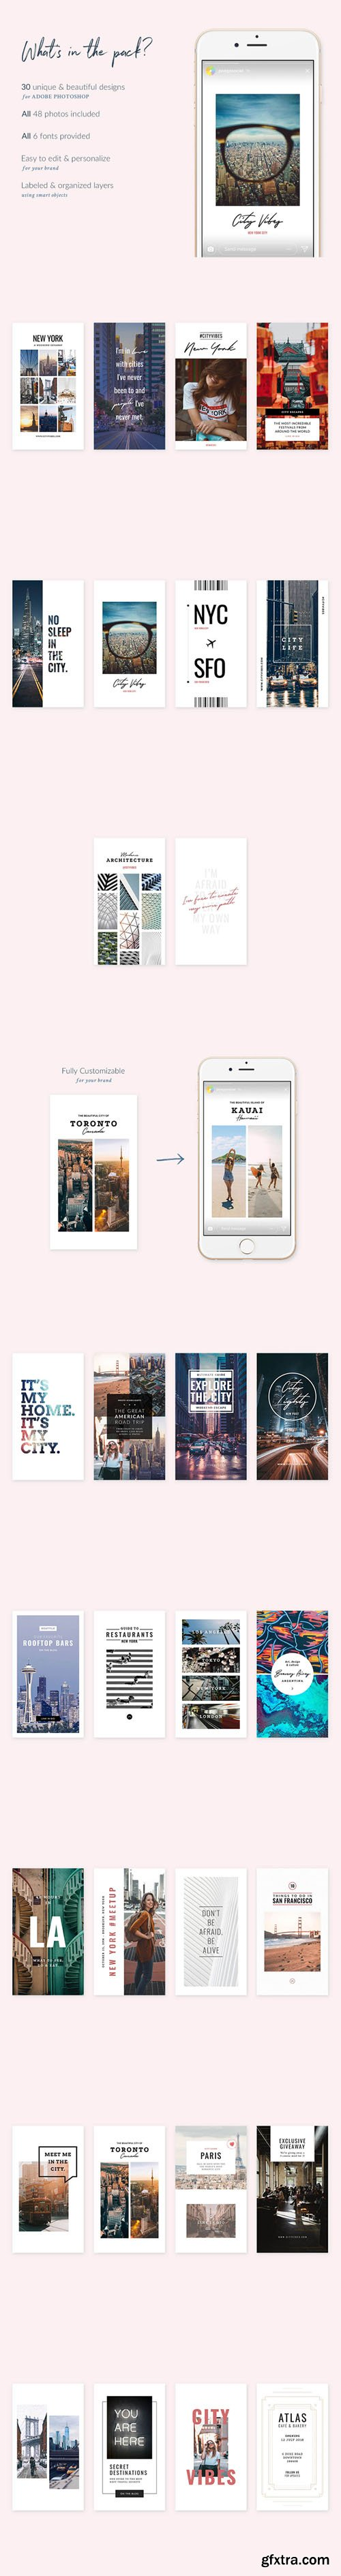 Cities Instagram Stories - 30 Beautiful Instagram Story templates designed in Photoshop